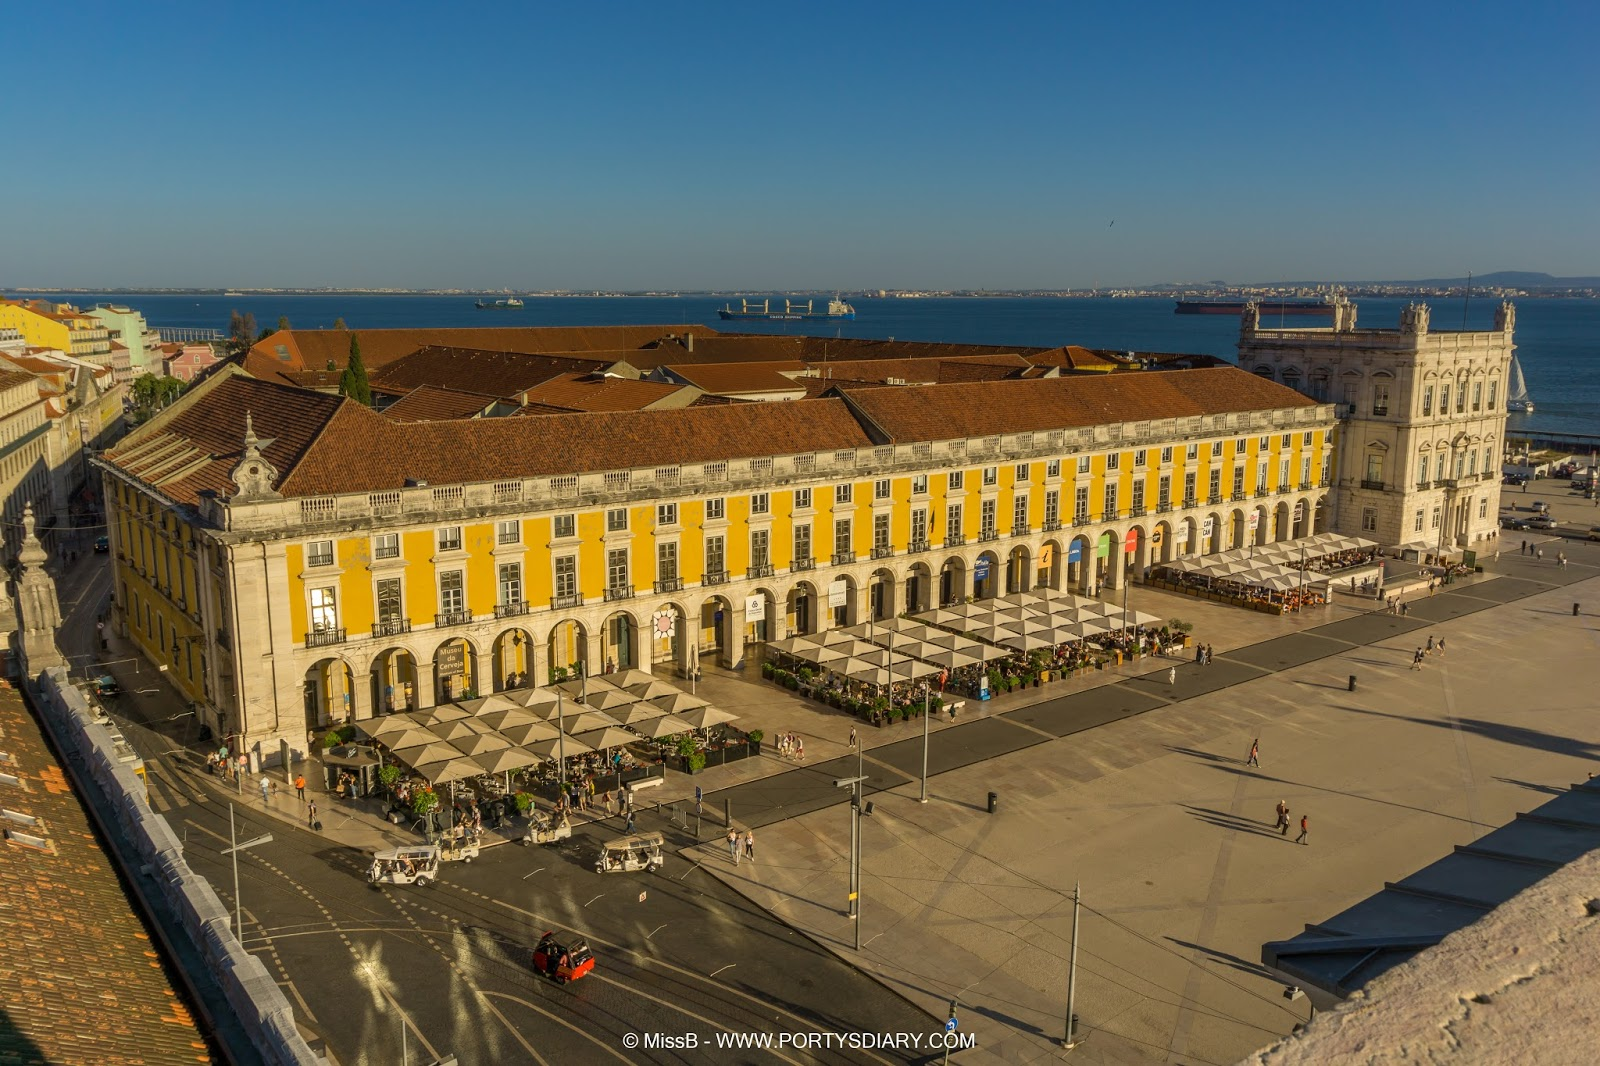 TravelThursday | 24h in Lisbon: what to see? | Porty's Diary. | Photos with Sony a6000 & a5100